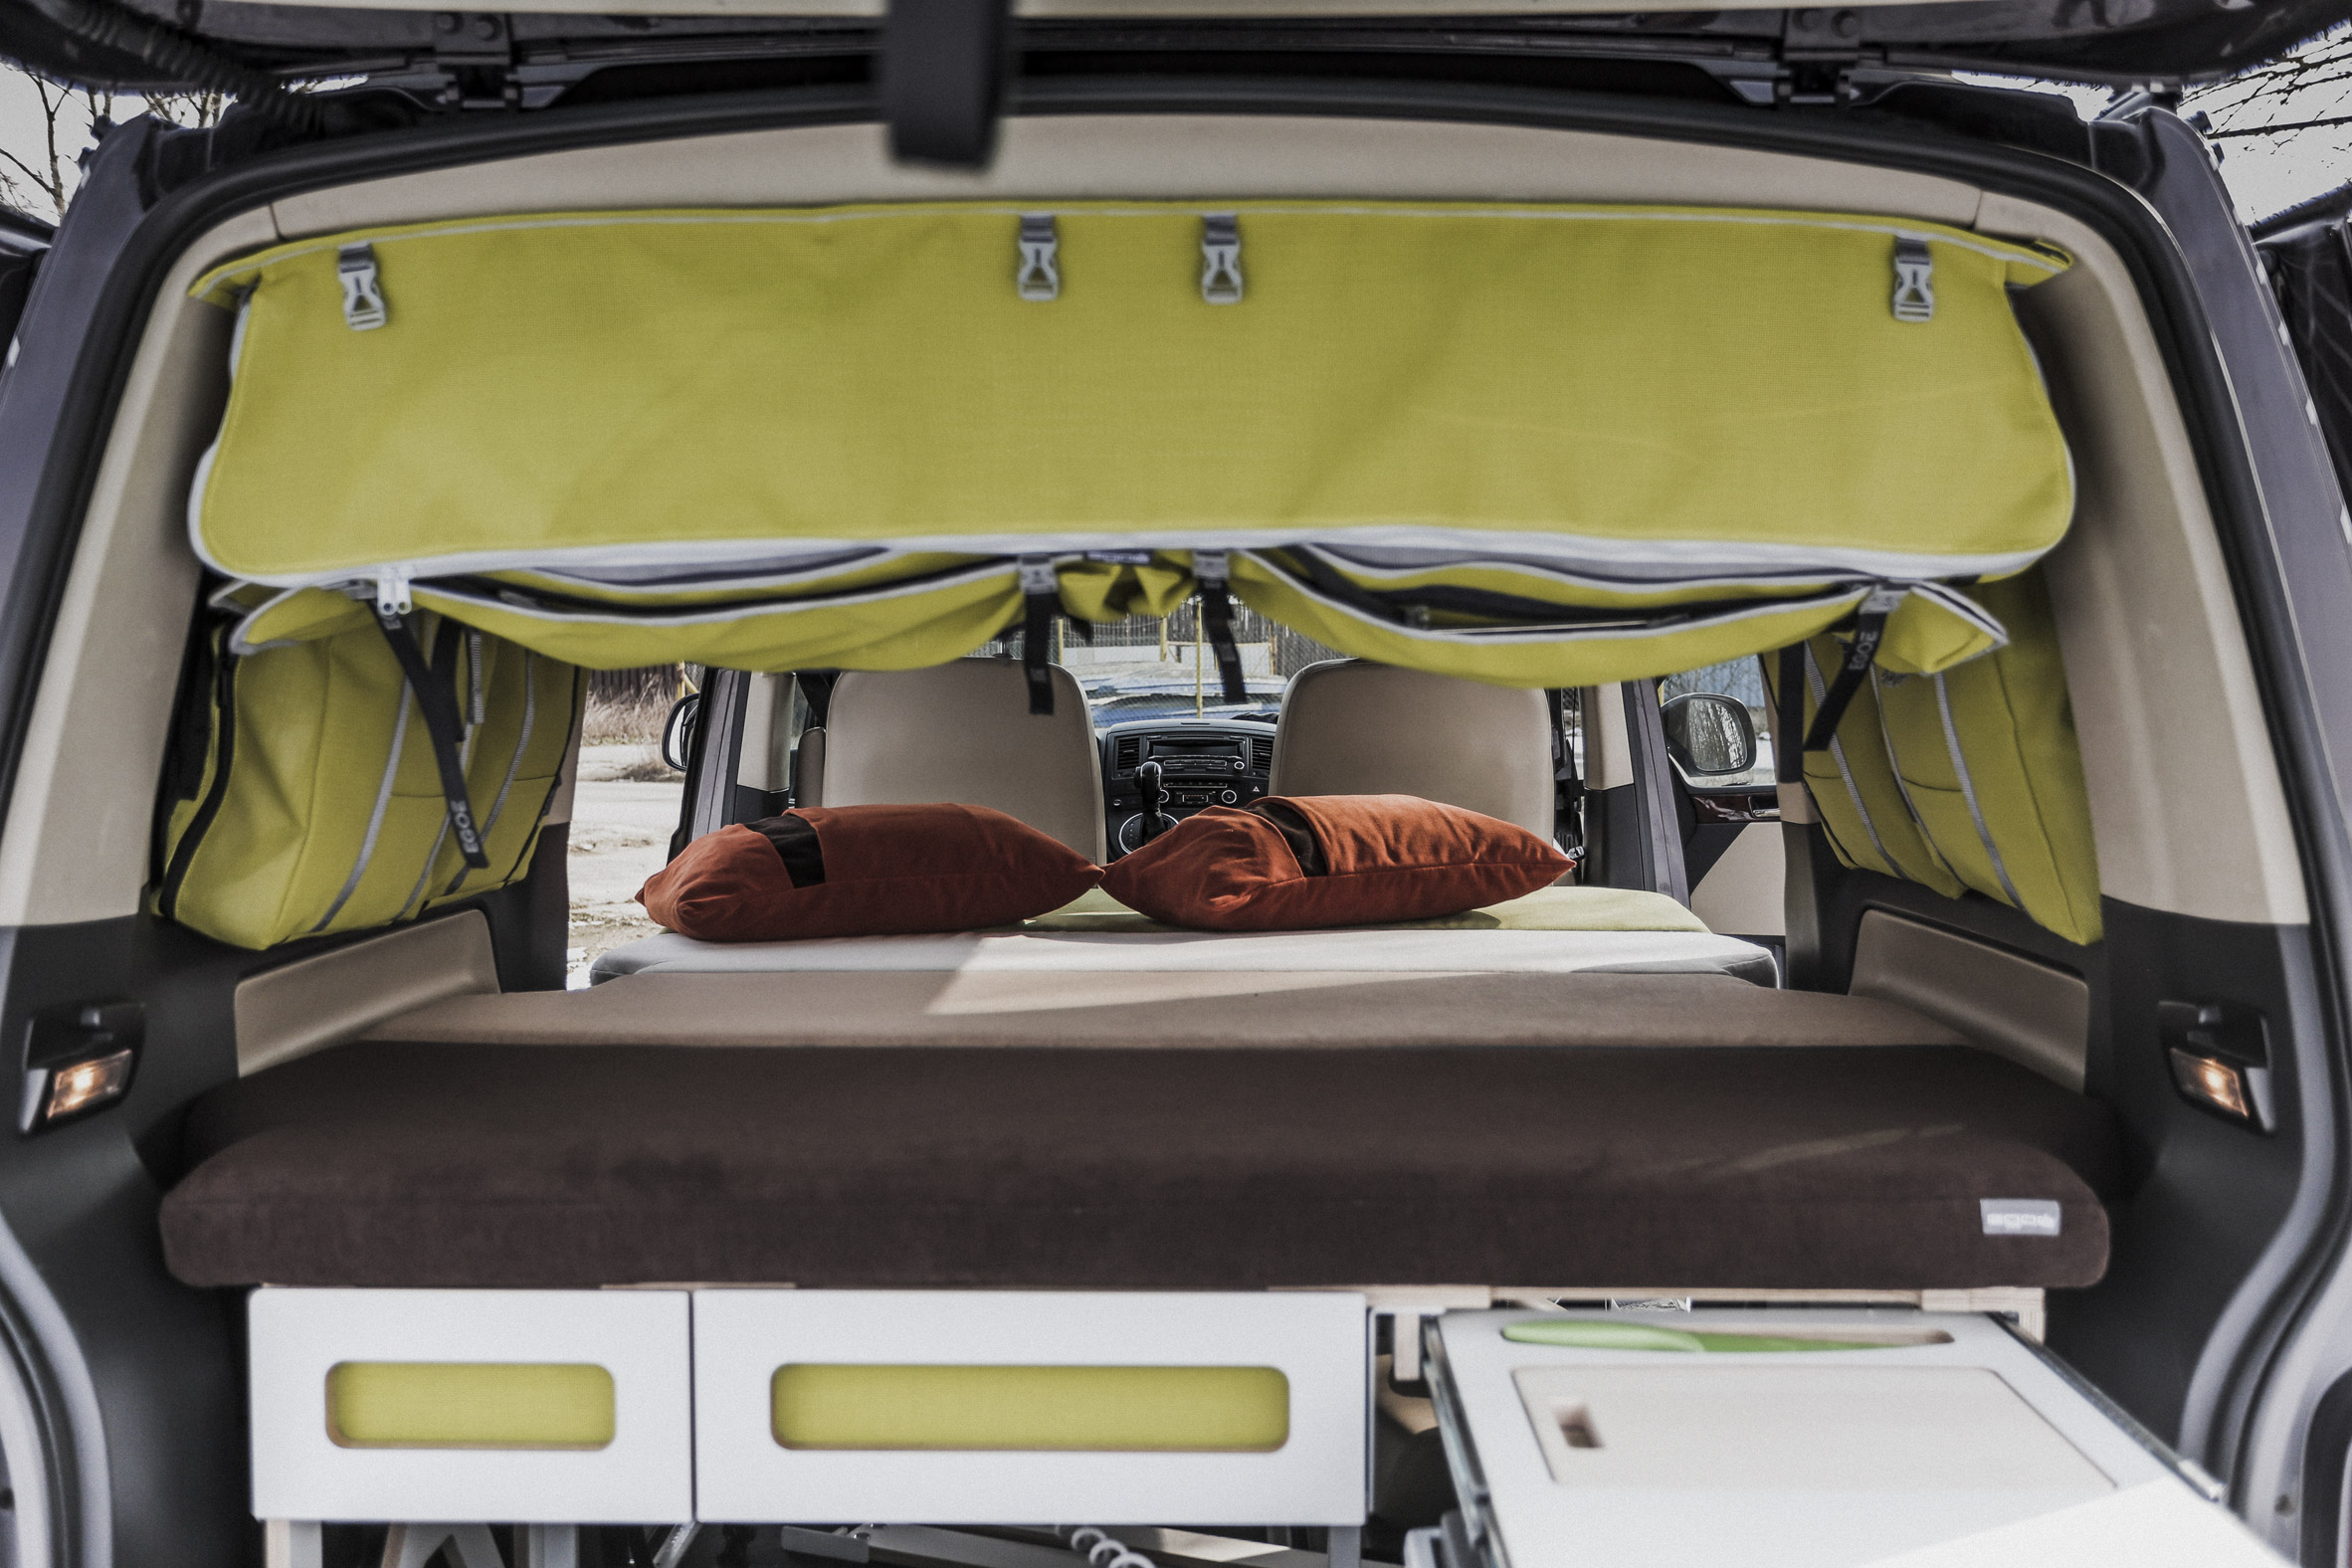 Nestbox is a modular trunk extension that turns cars into campers